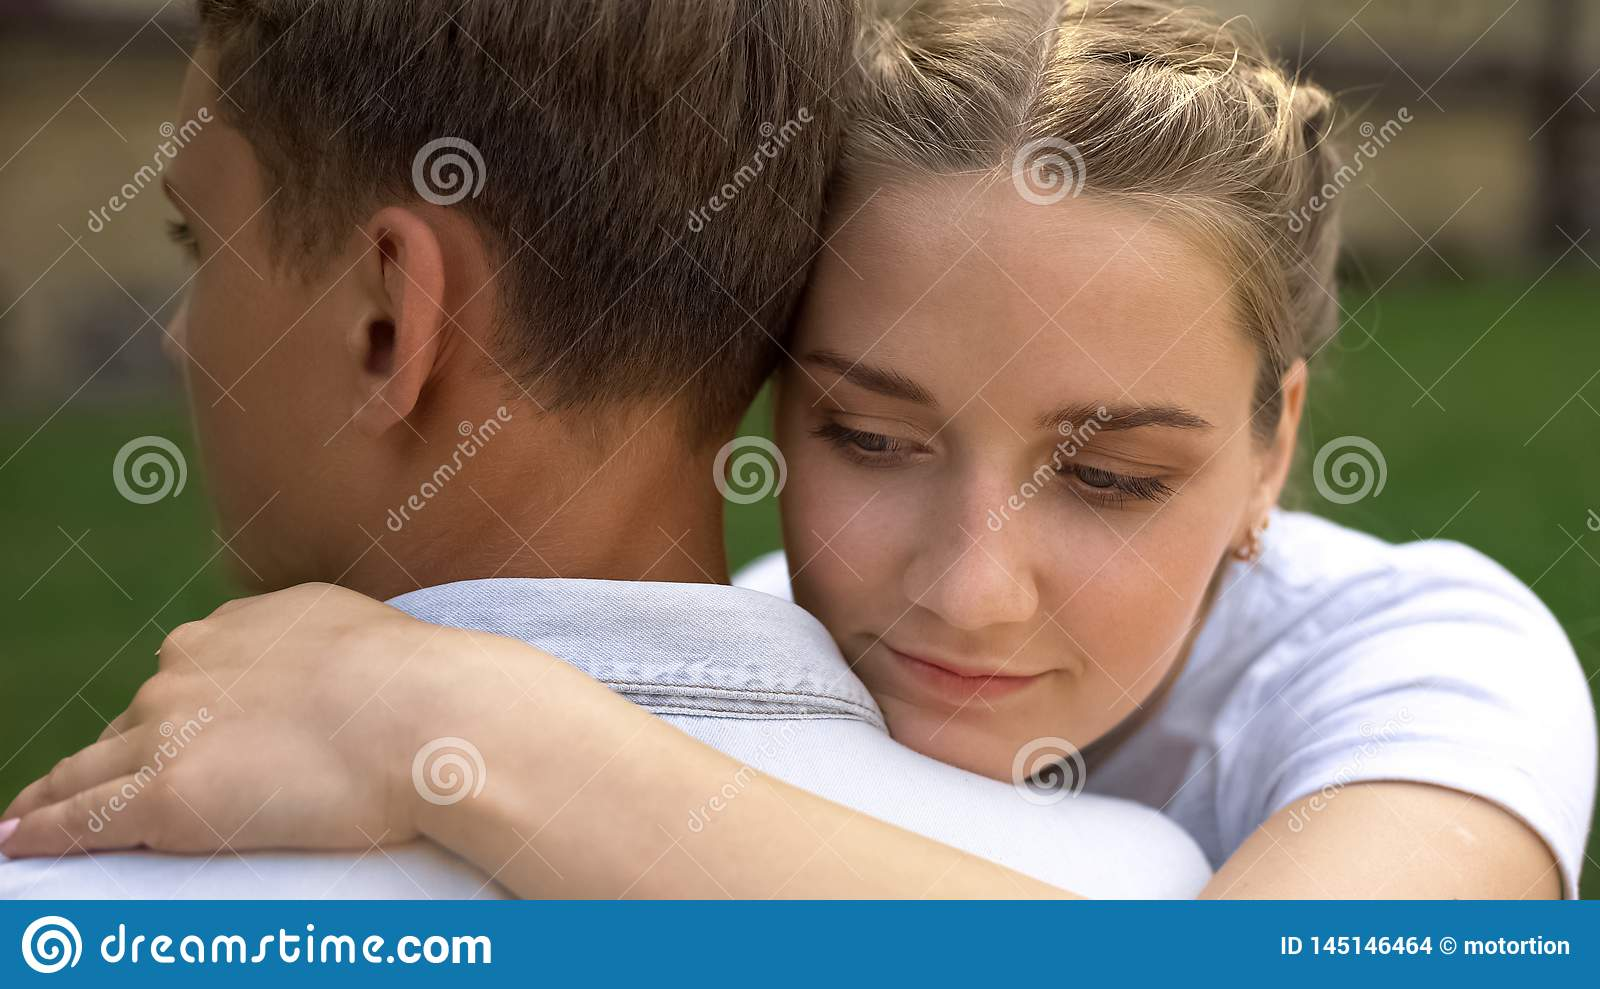 Couple Of Teenagers Embracing Each Other First Love Tender Relationship Youth Stock Photo Image Of Male Love 145146464